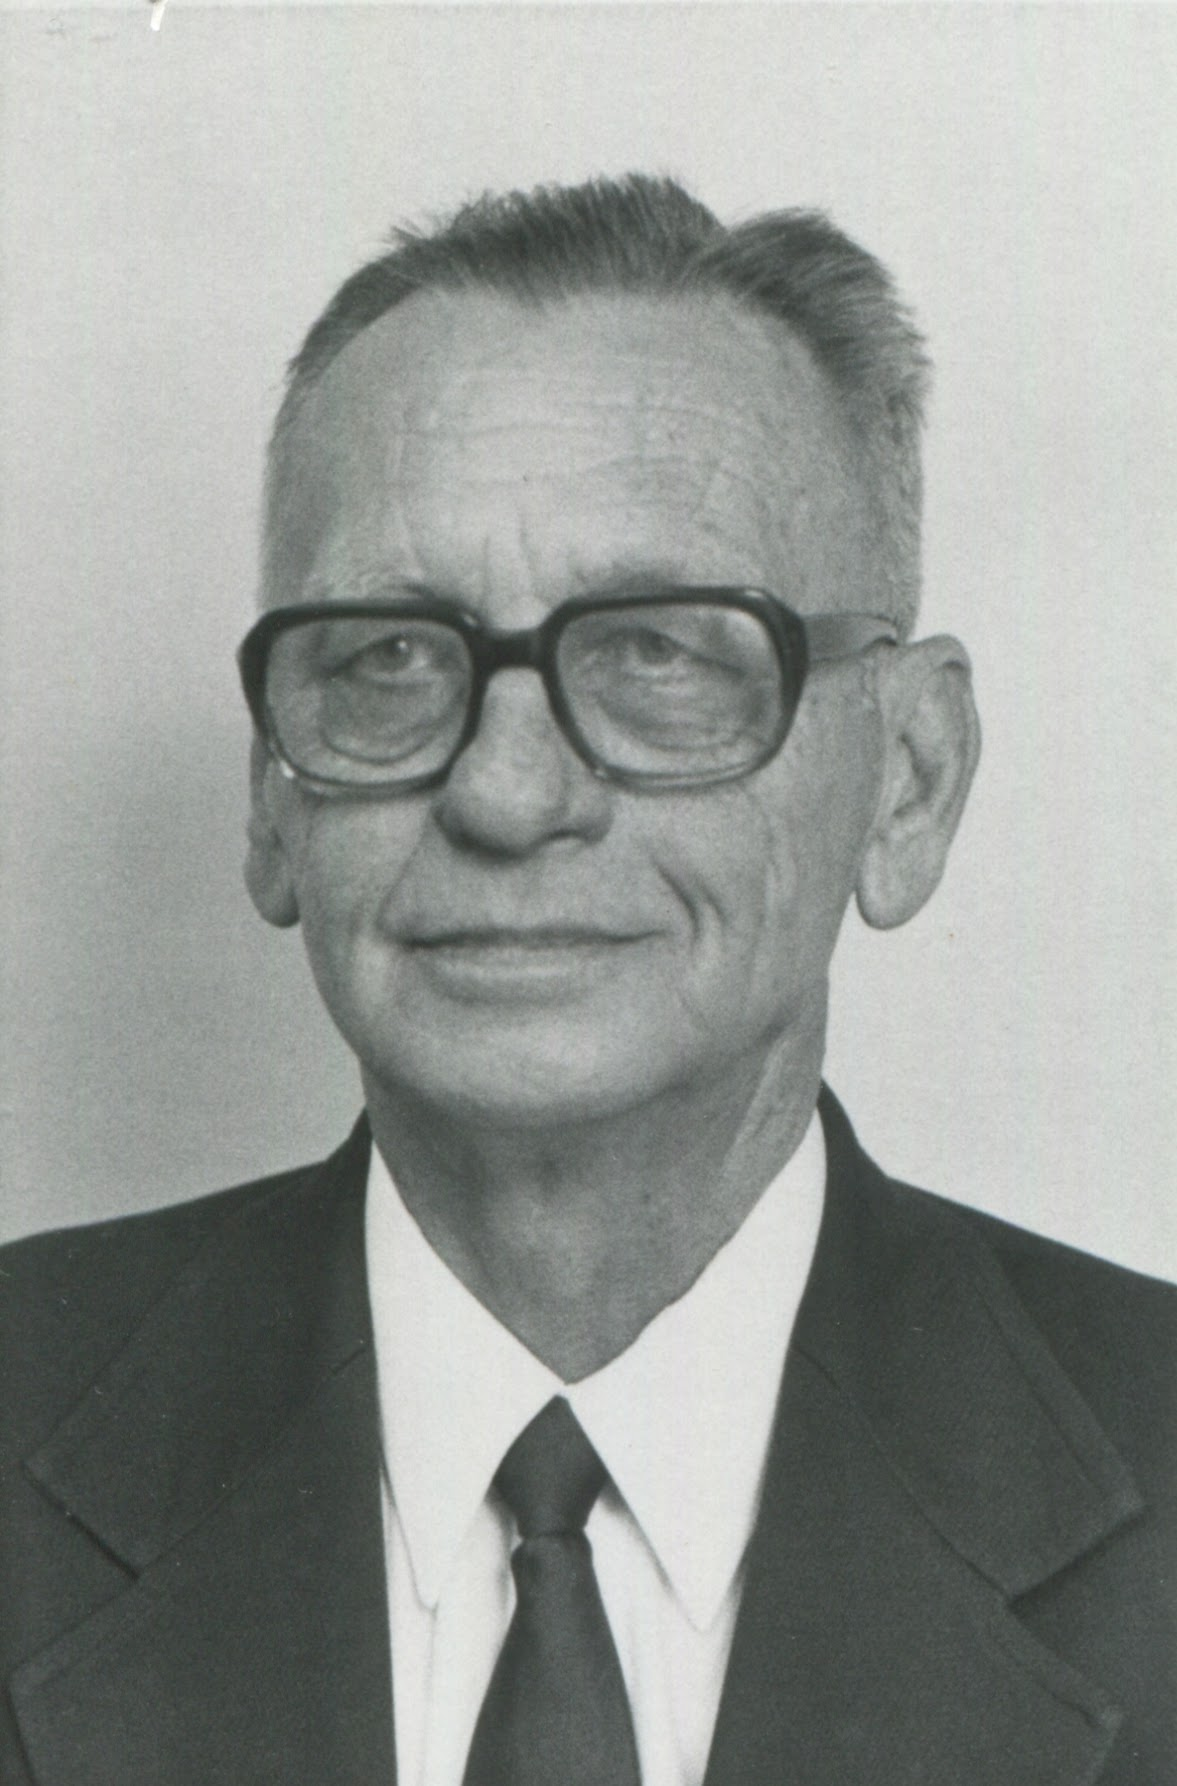 James T. Young